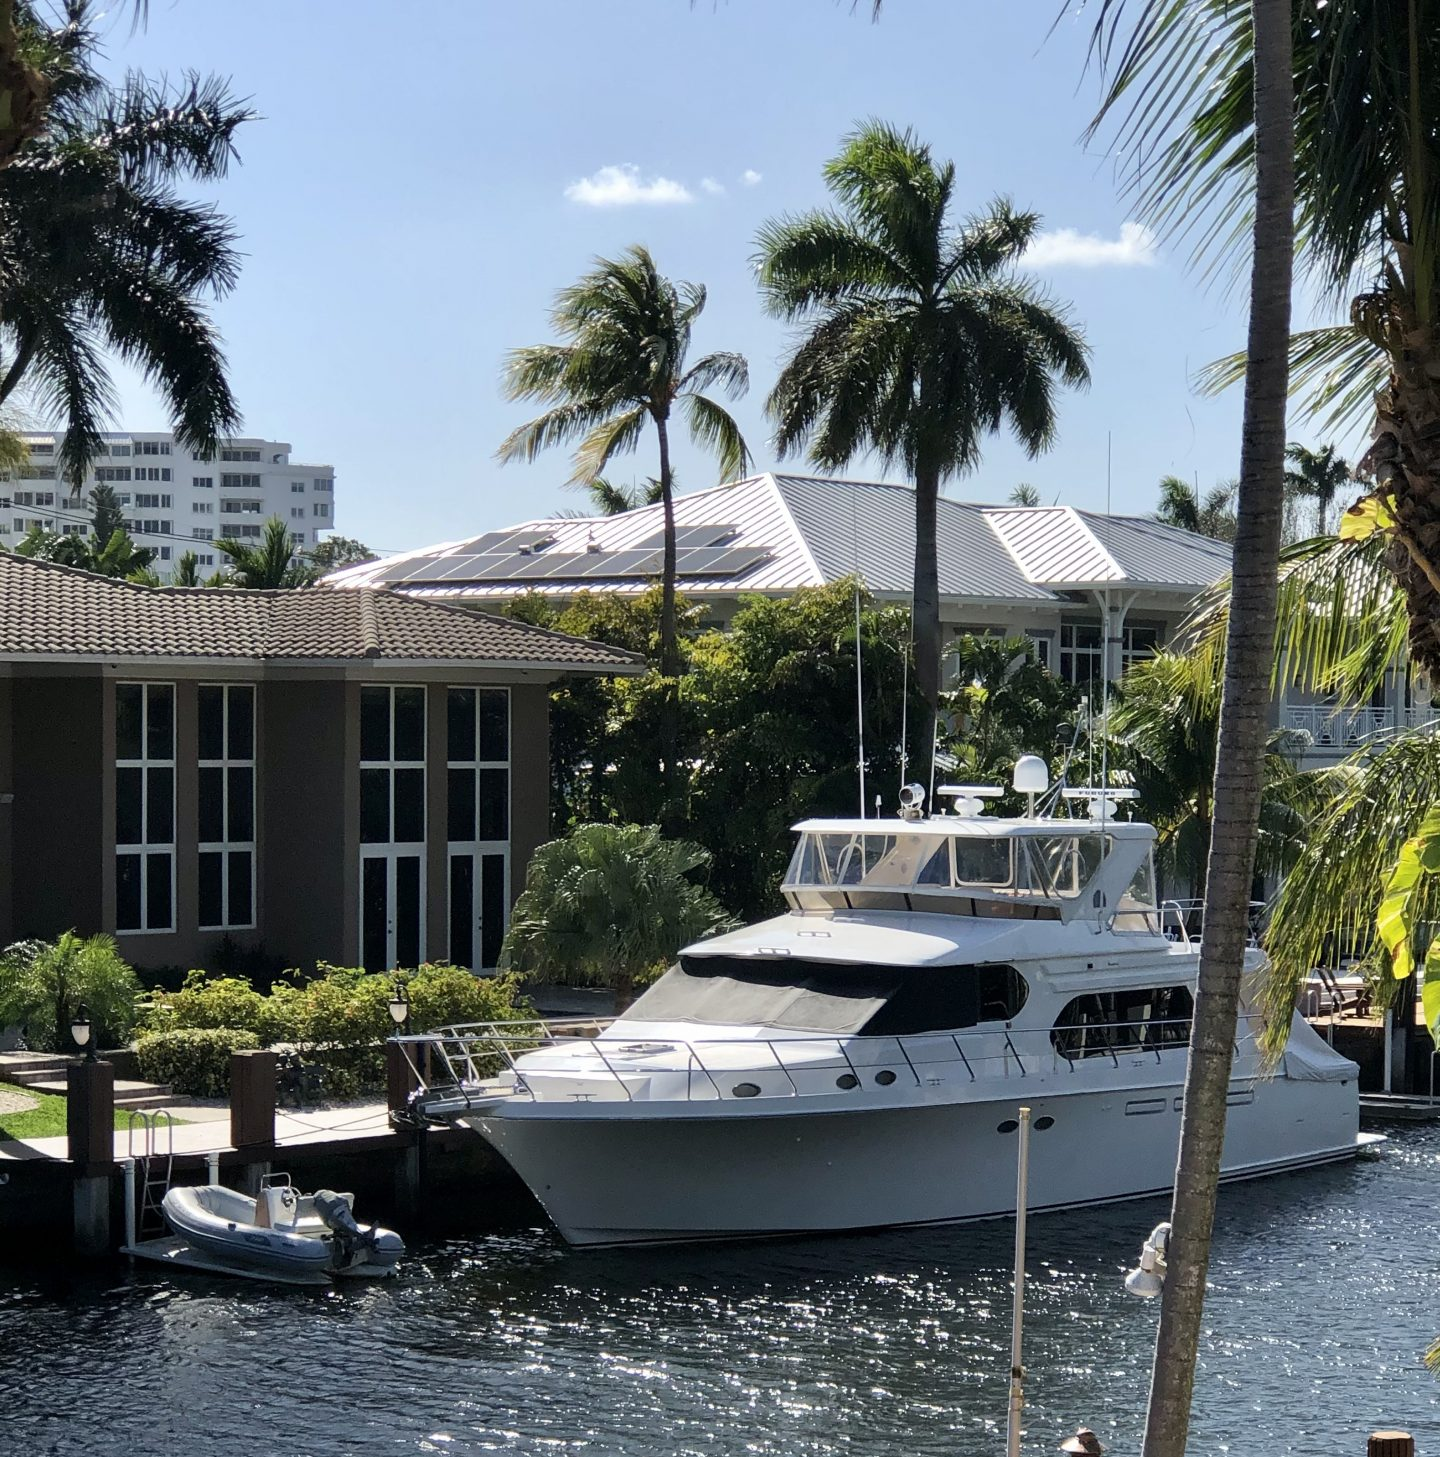 Fort Lauderdale canal